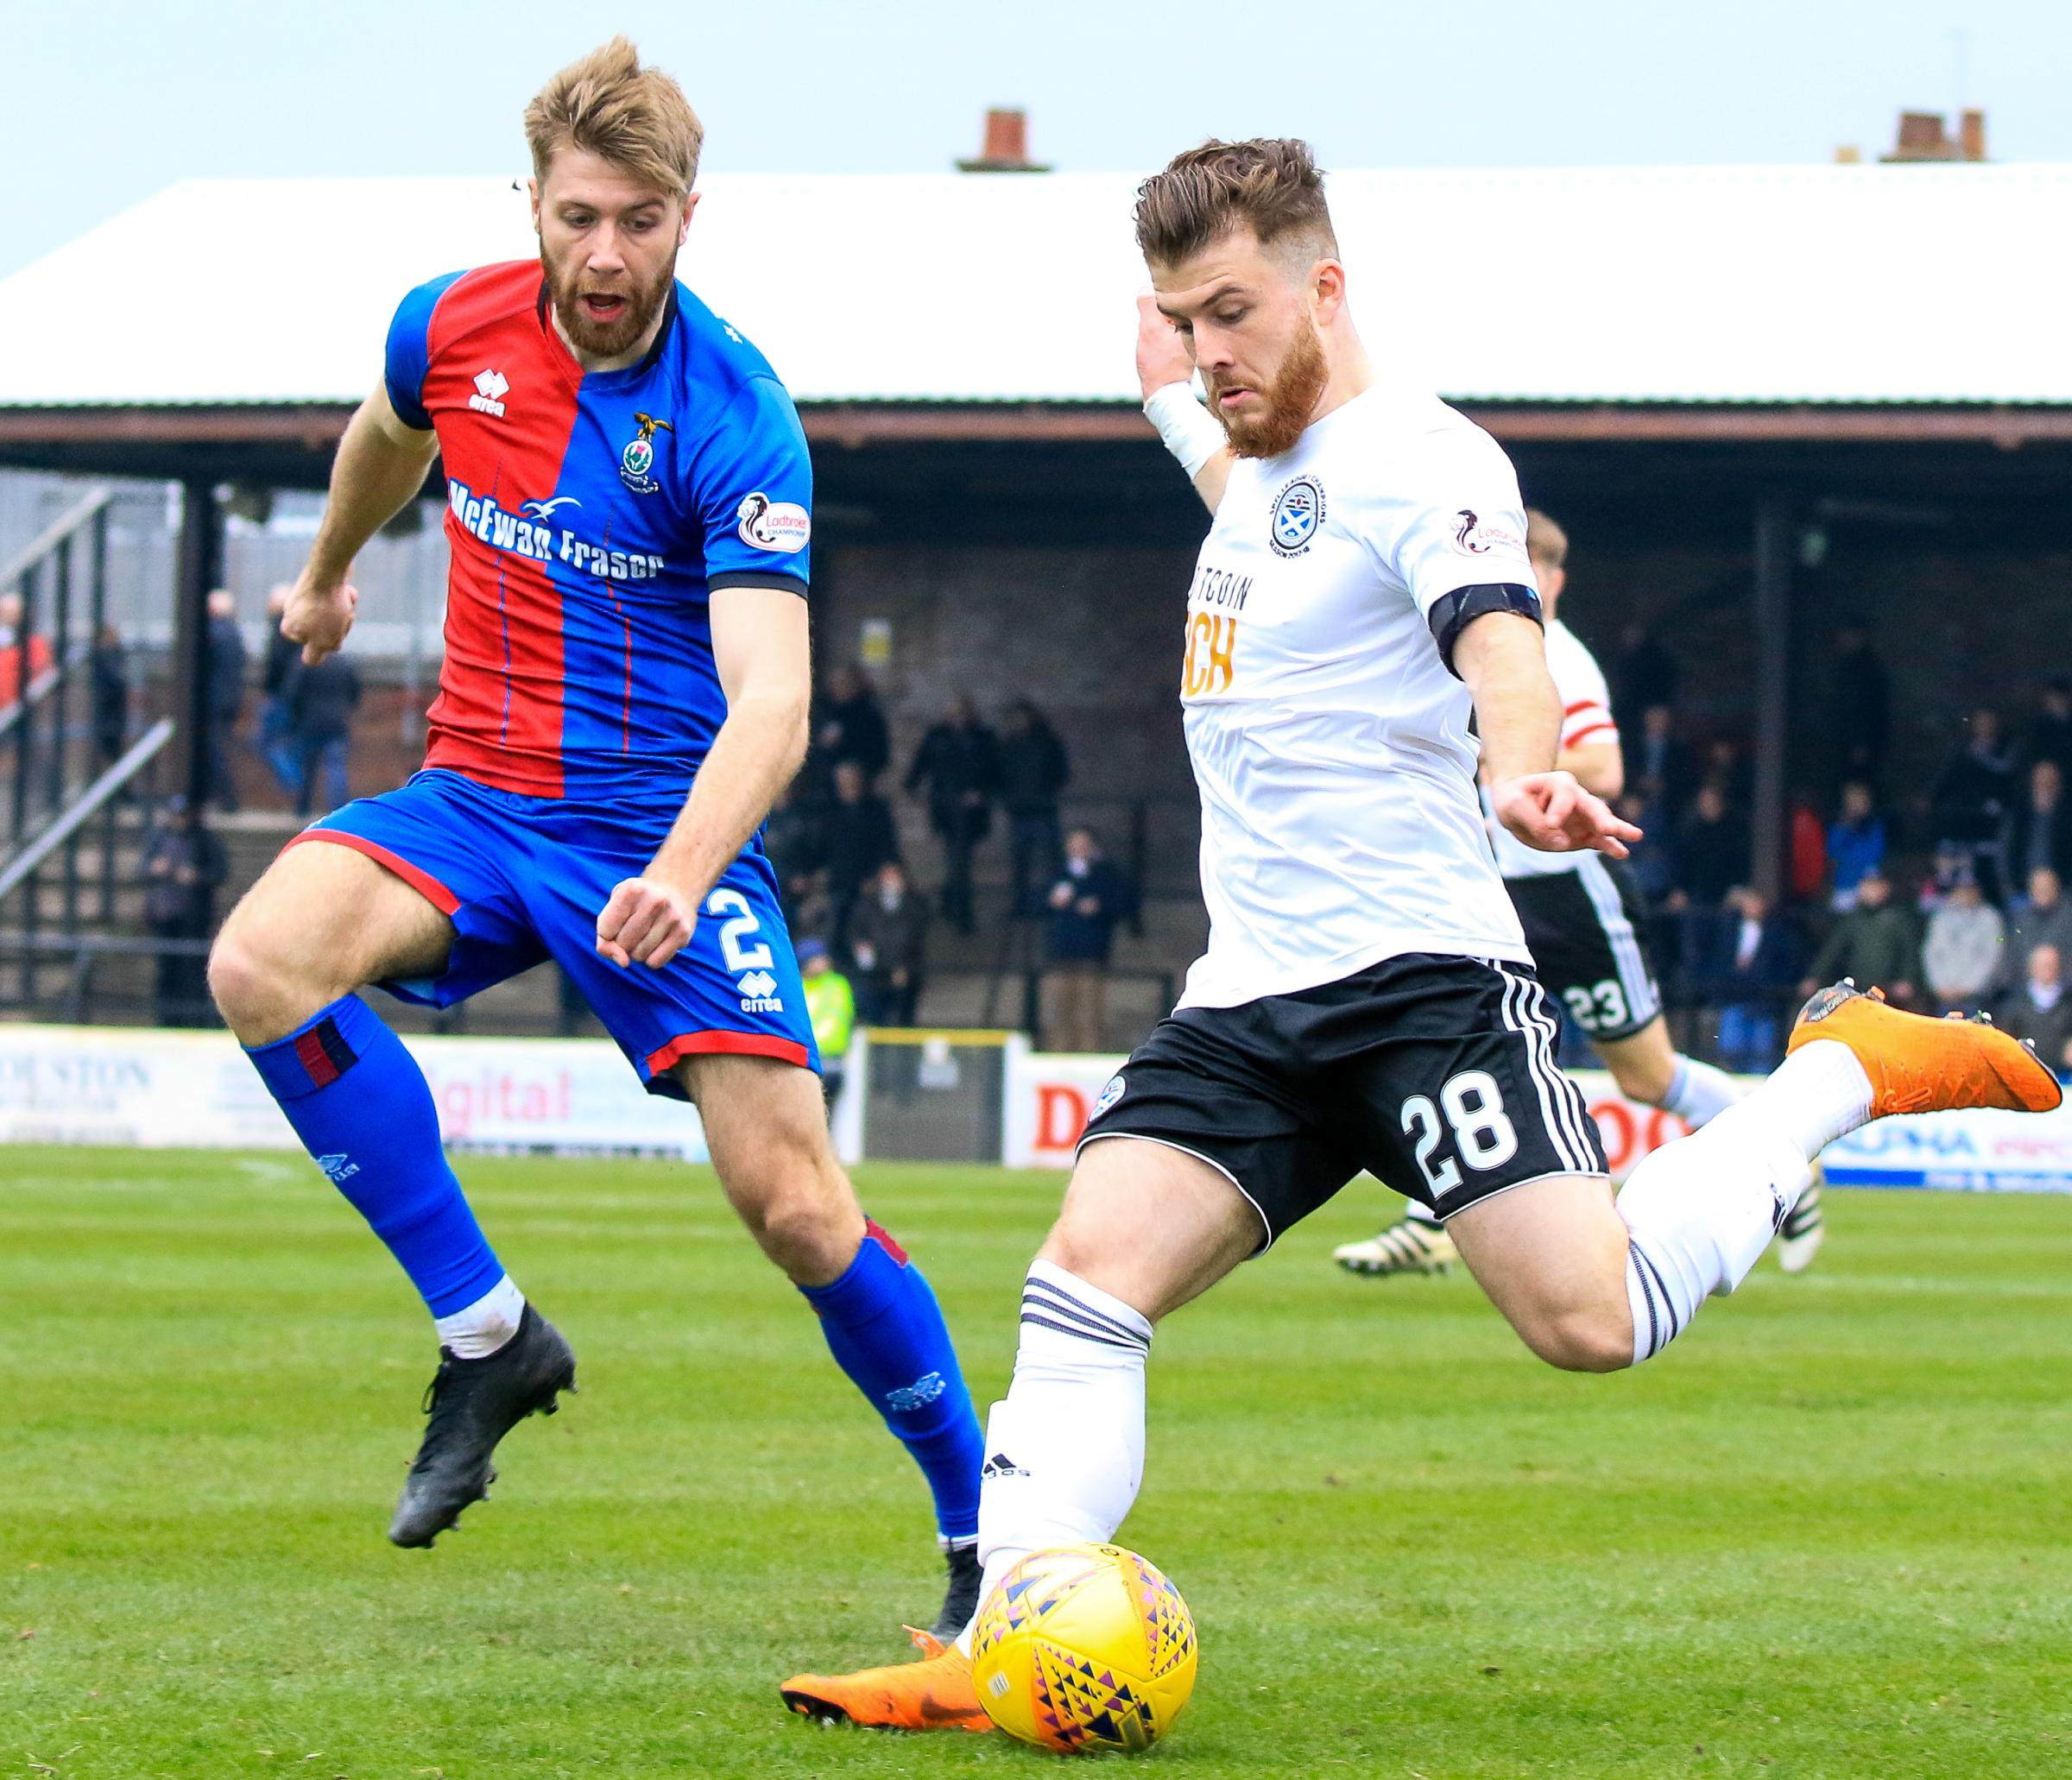 Ayr go on the attack against Caley Thistle.